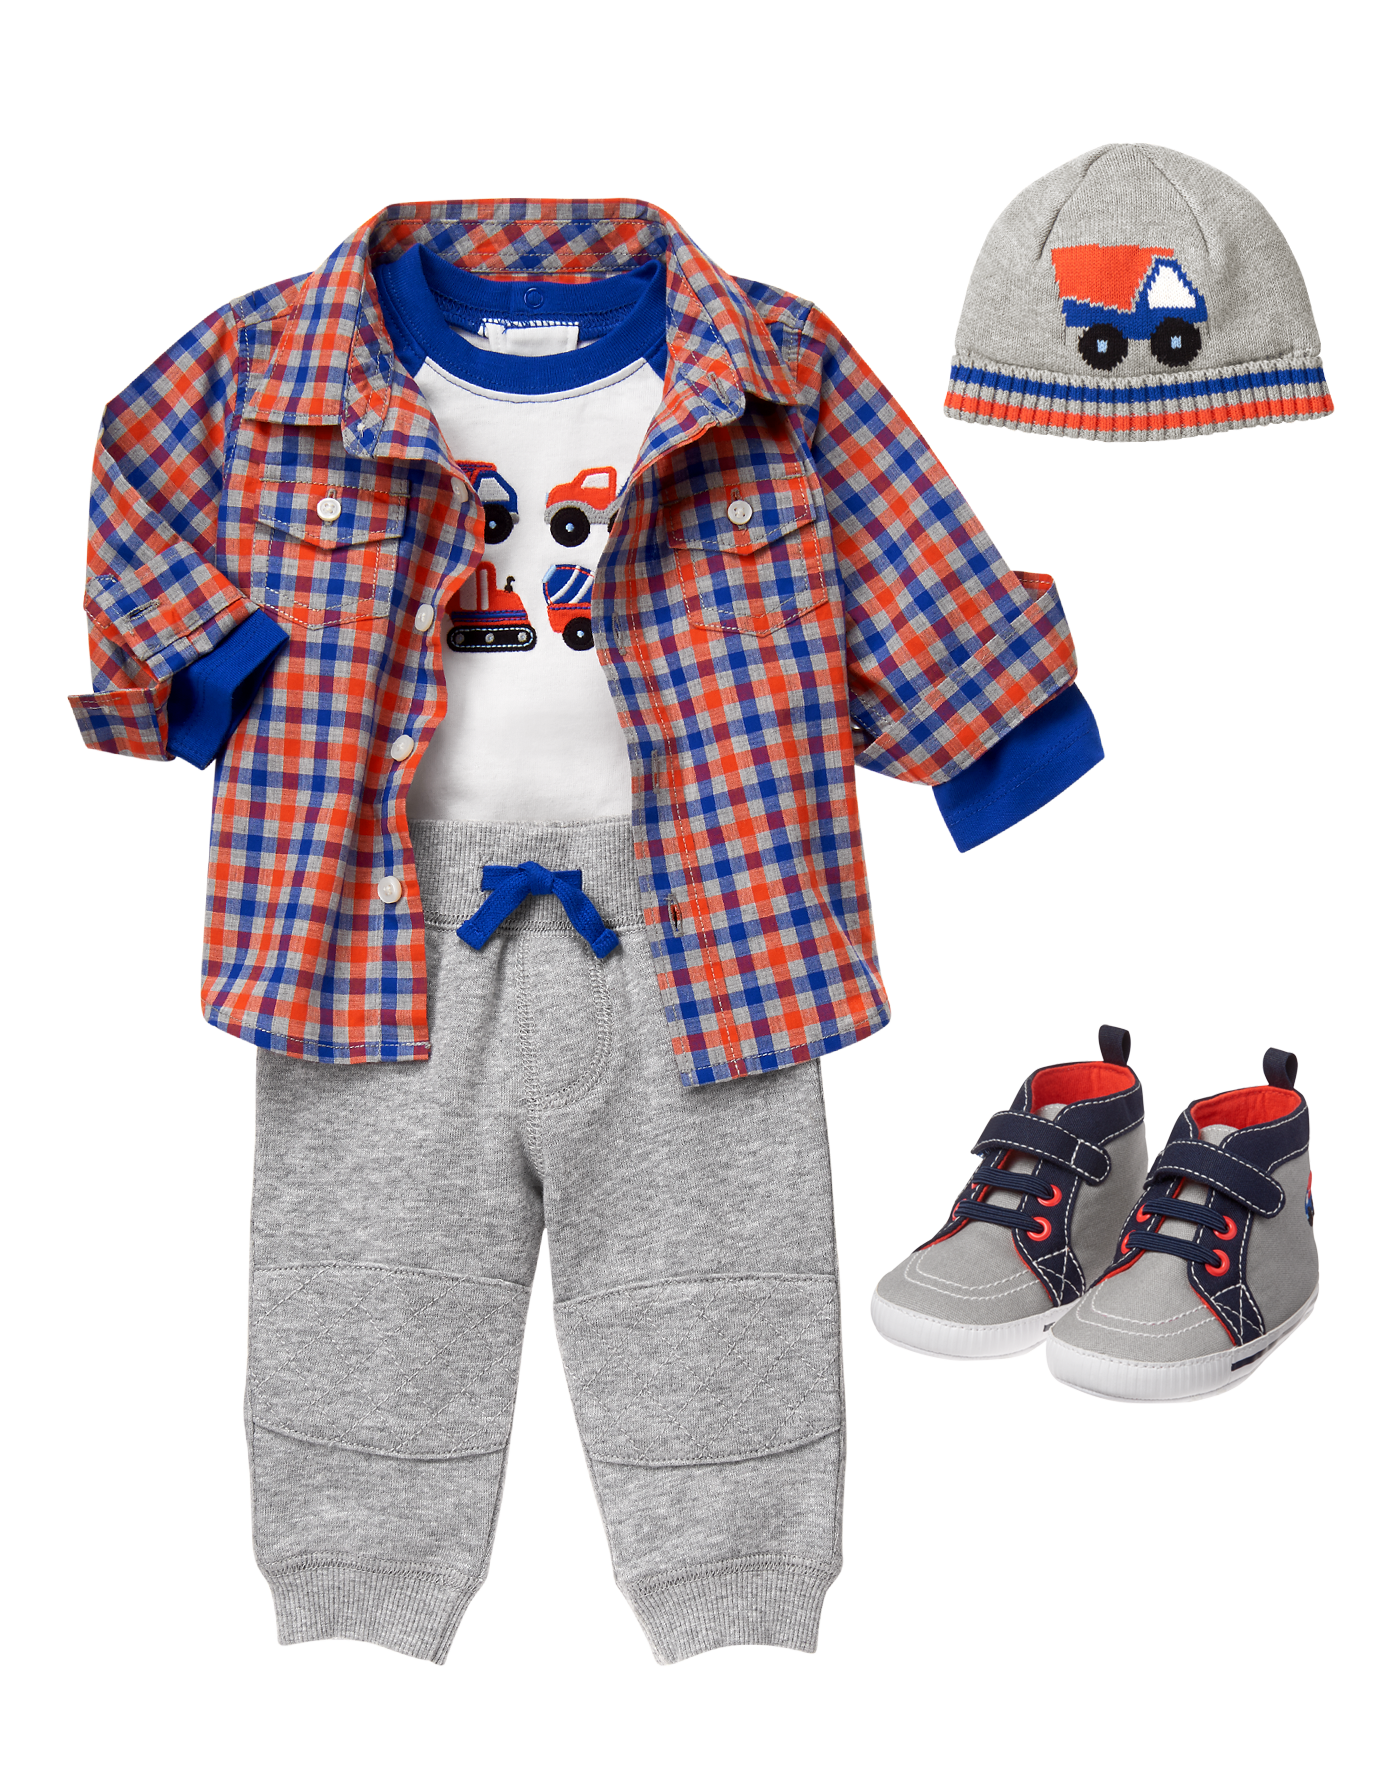 Boy baby clothes png. So cute adorable outfit